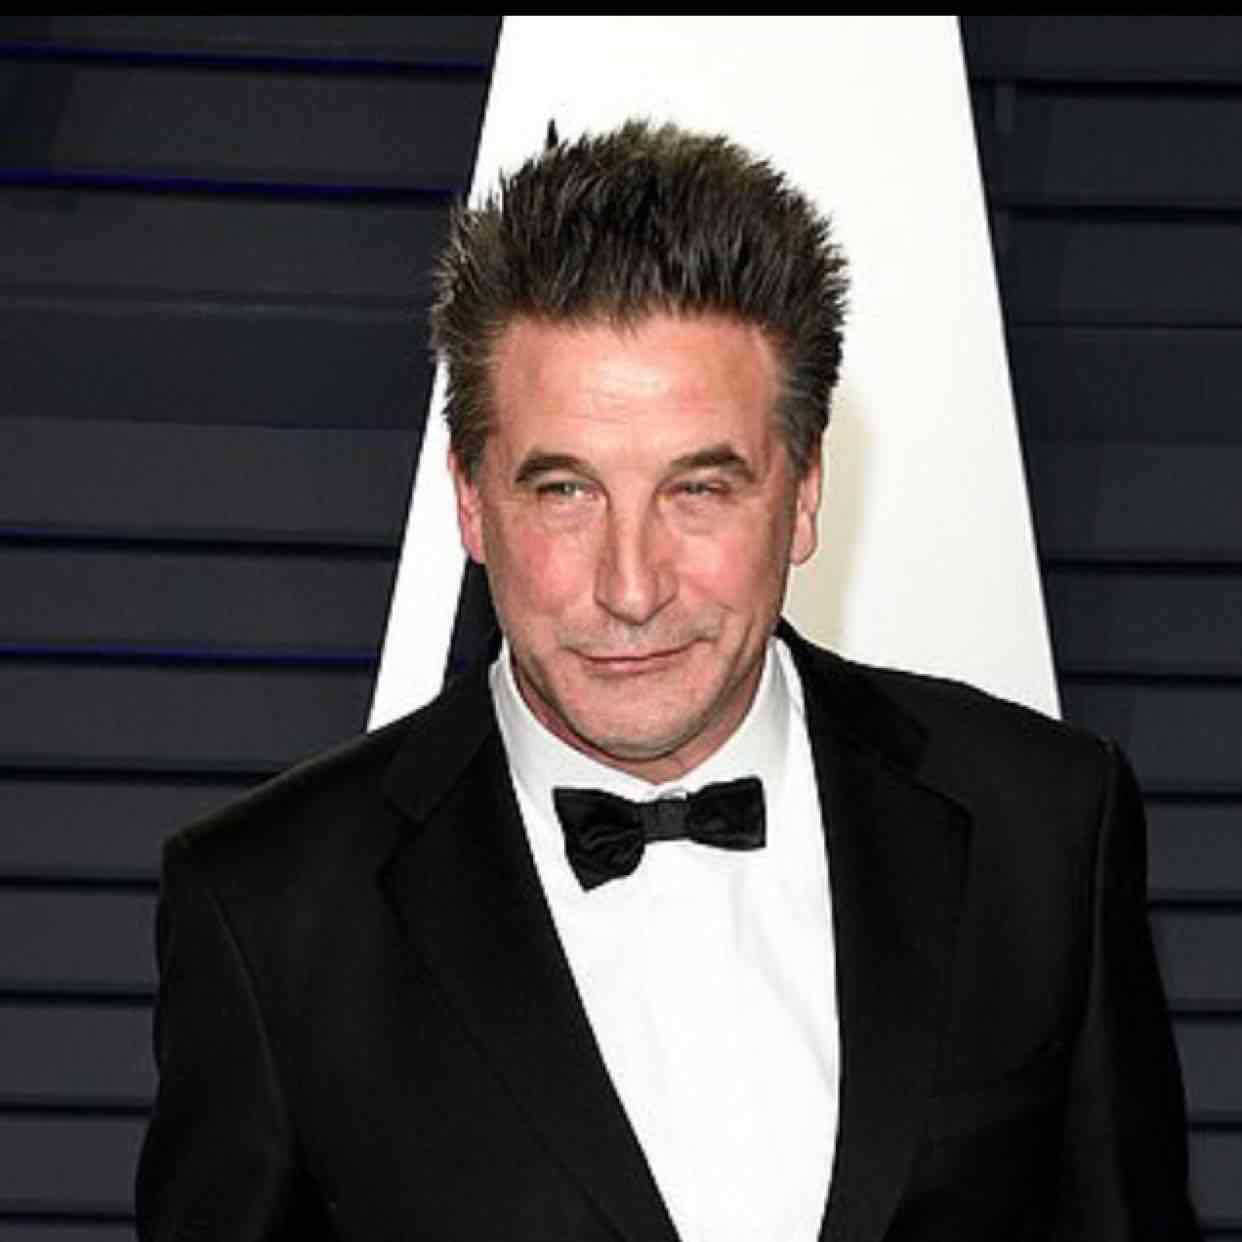 Avatar of Billy Baldwin